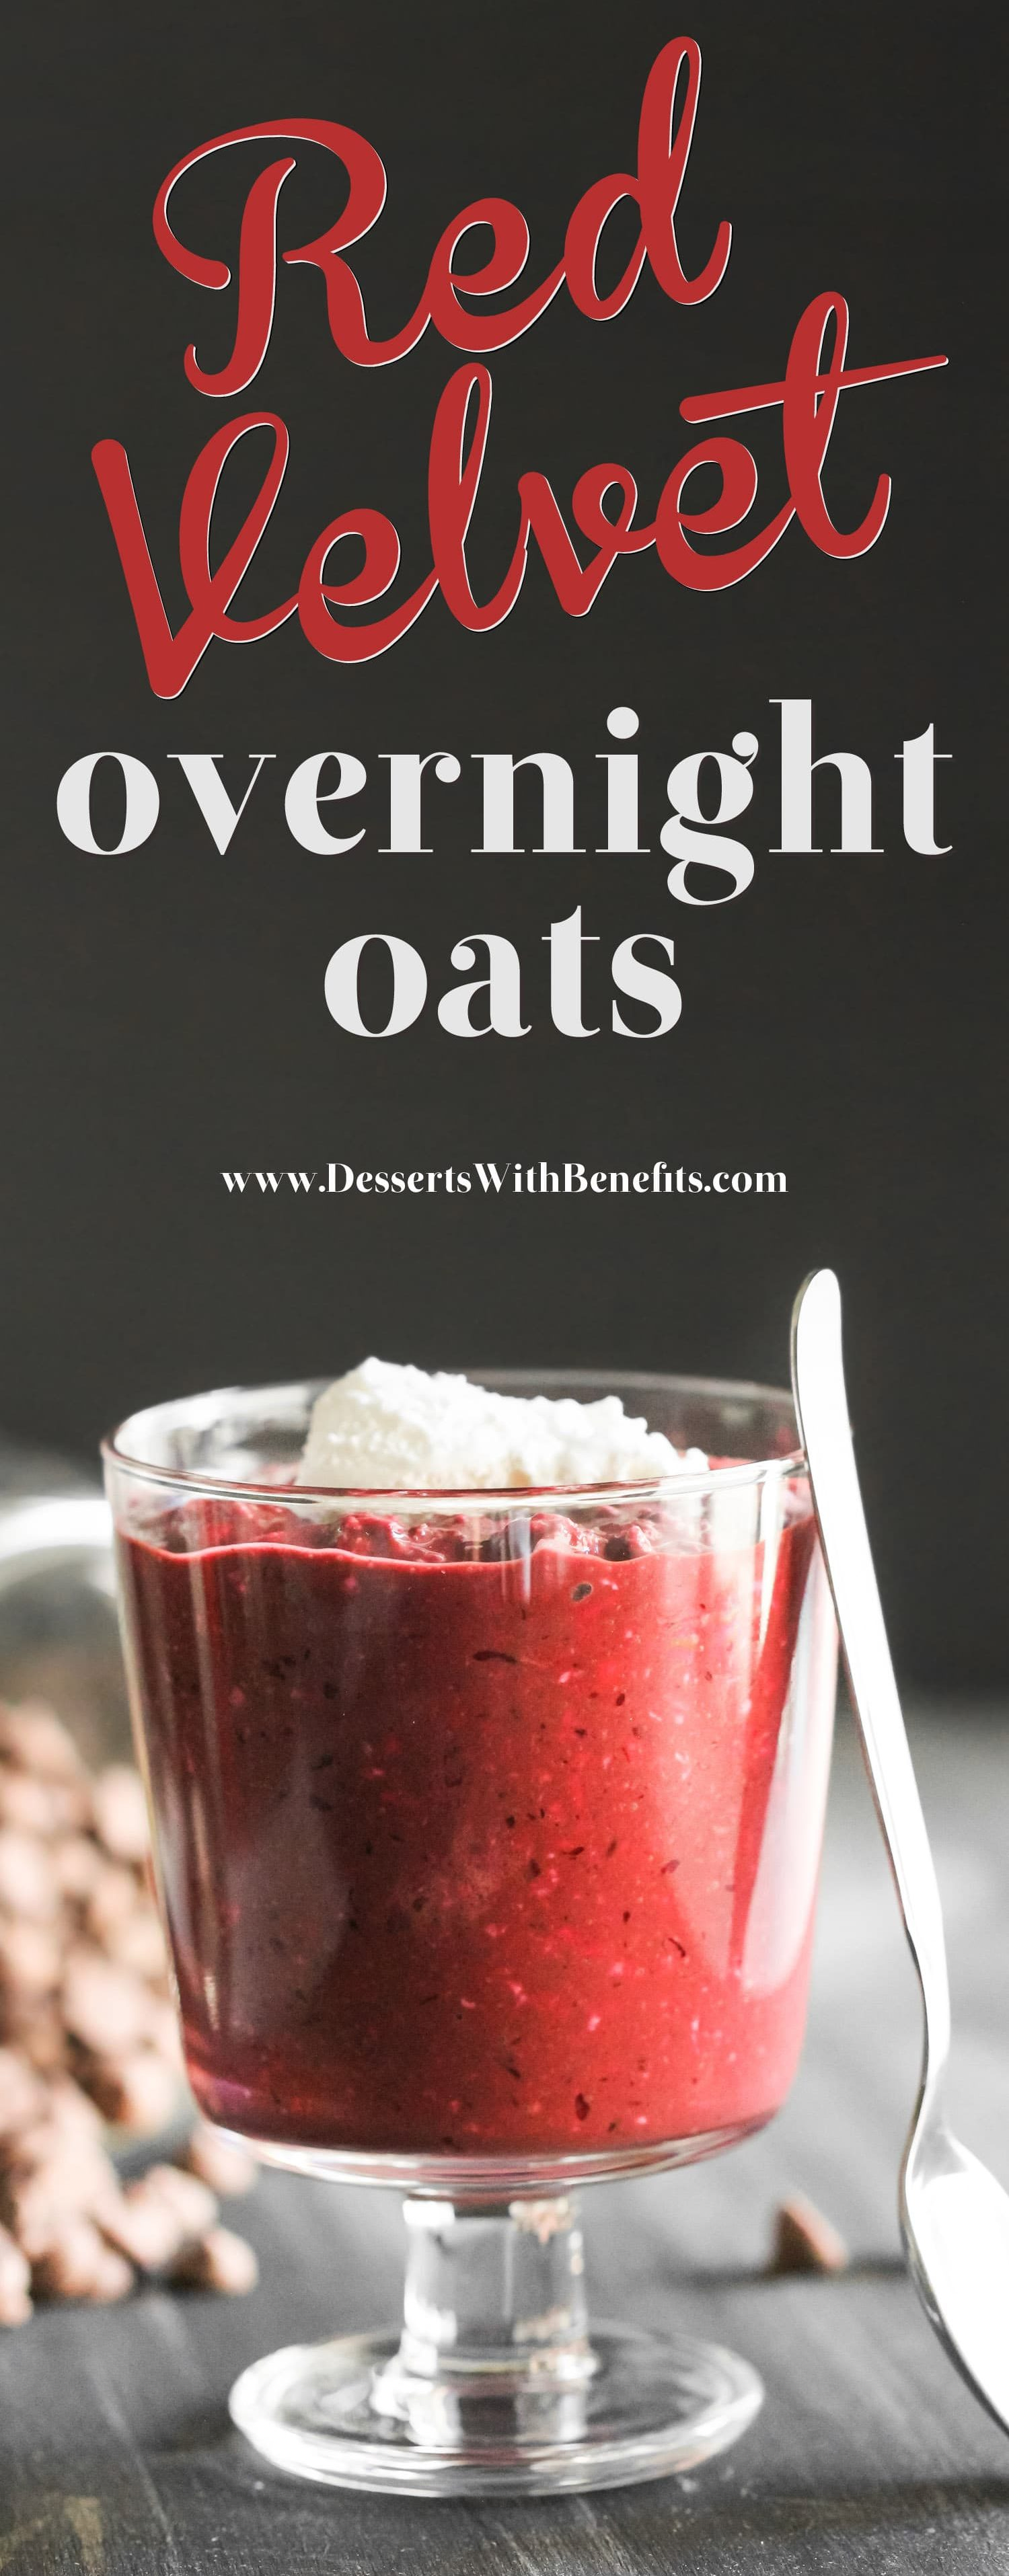 Have dessert for breakfast with these Healthy Red Velvet Overnight Dessert Oats! This single serving recipe is all natural (no artificial food dyes here) sugar free, high fiber, gluten free, dairy free, and vegan. Satisfy your morning sweet tooth while getting in some nutrition! Healthy Dessert Recipes with low calorie, low fat, low carb, and high protein options at the Desserts With Benefits Blog.